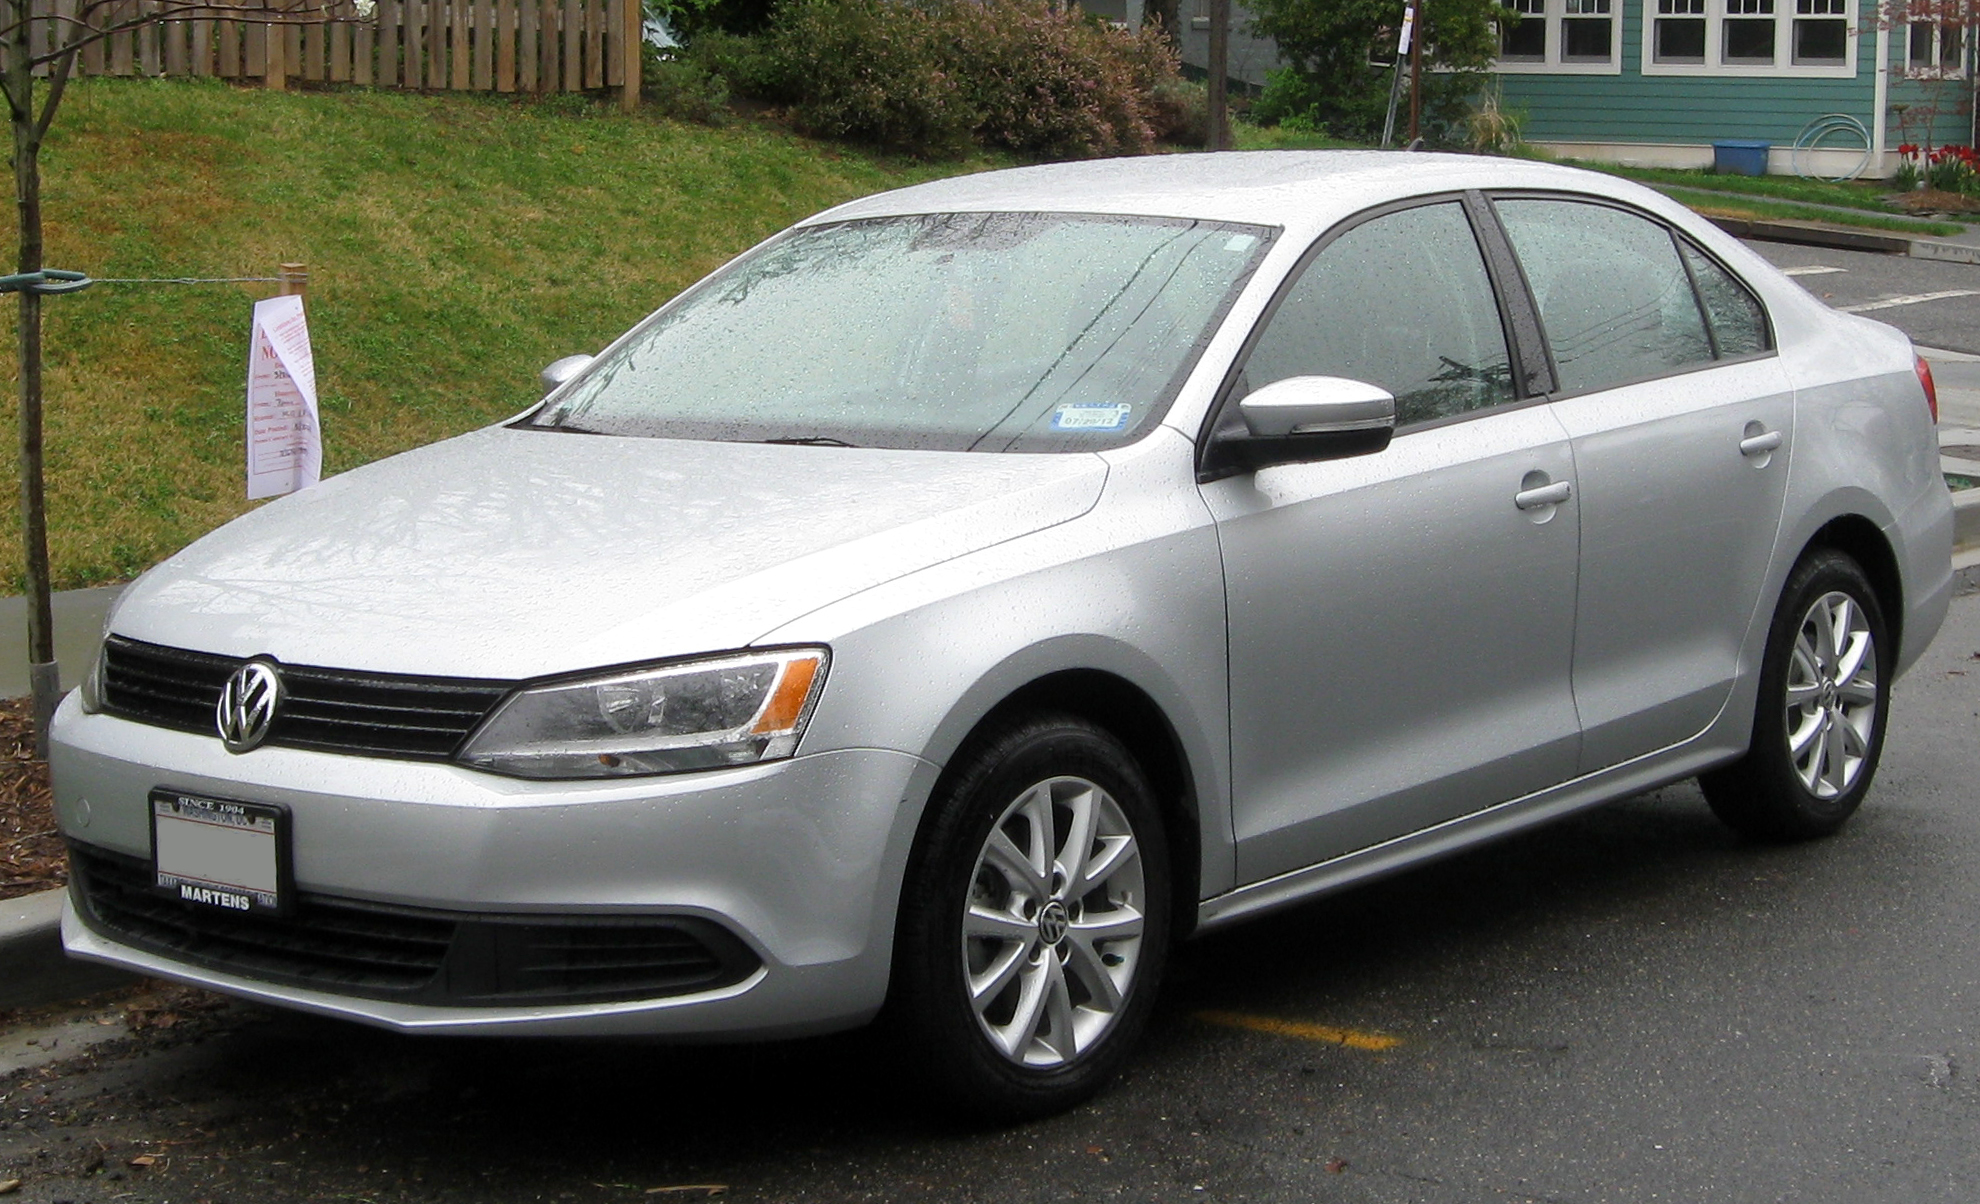 Jetta Wagon Tdi Body Work And Paint